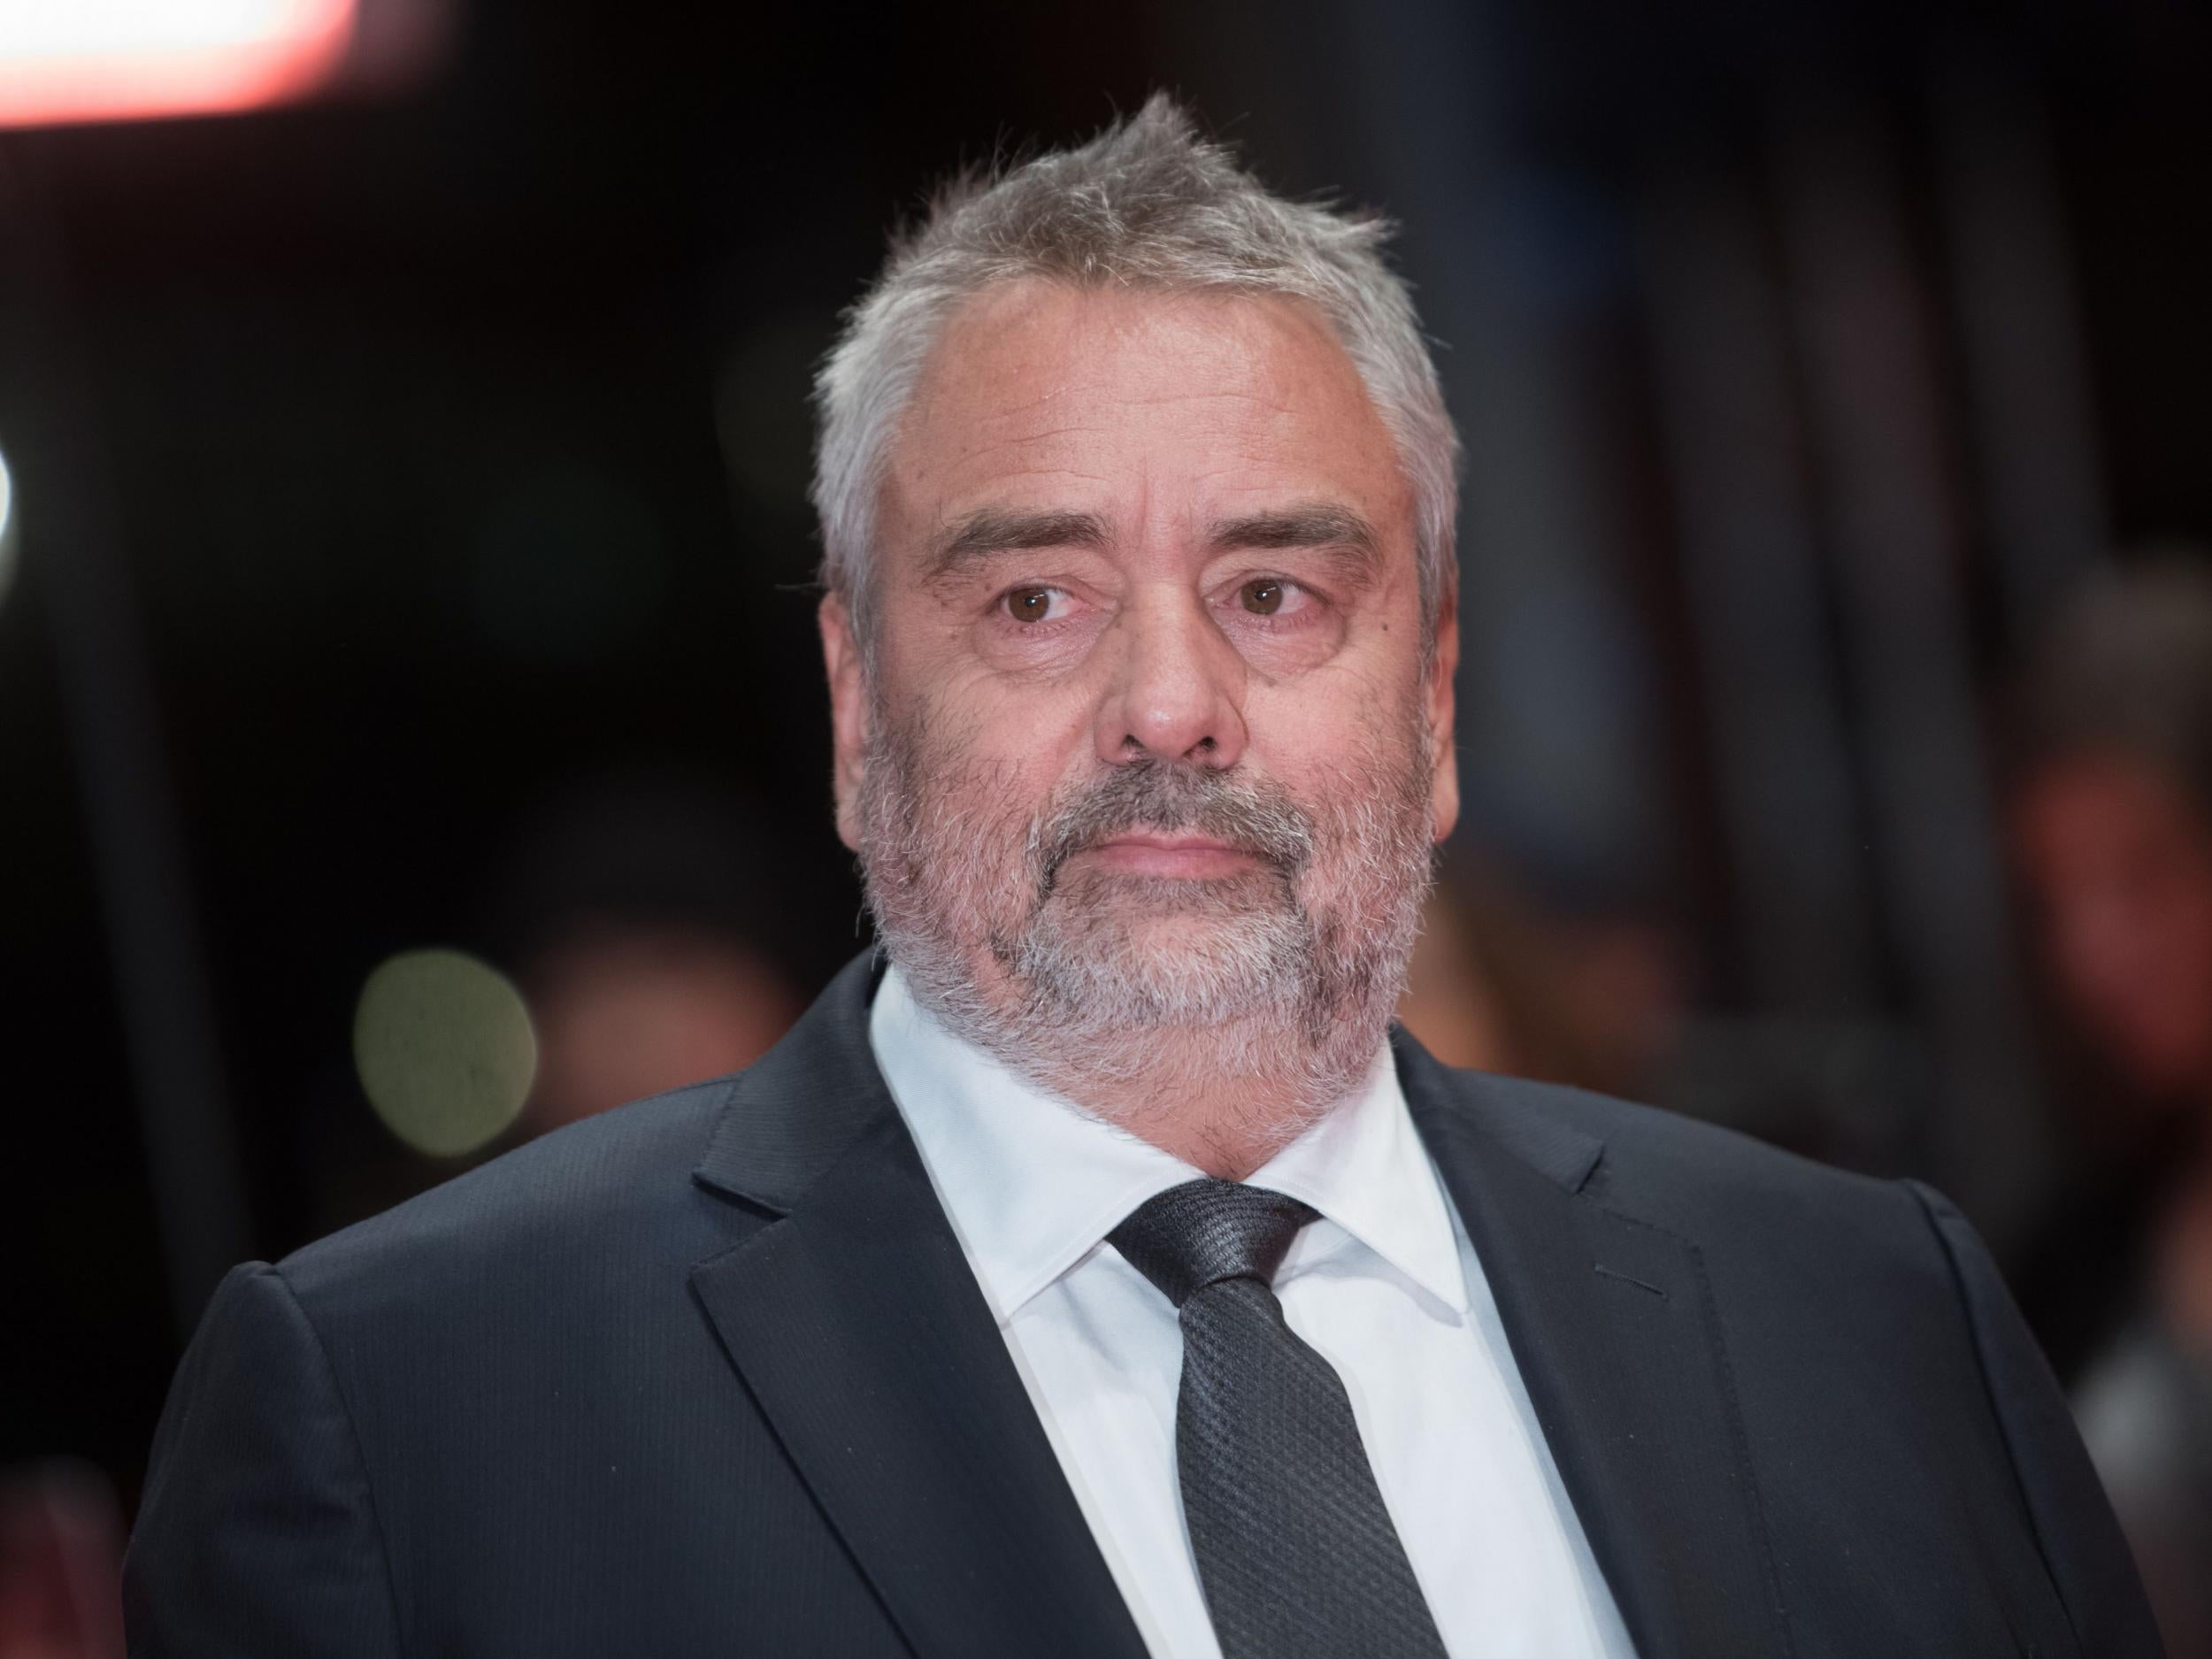 Filmmaker Luc Besson under investigation over rape allegation